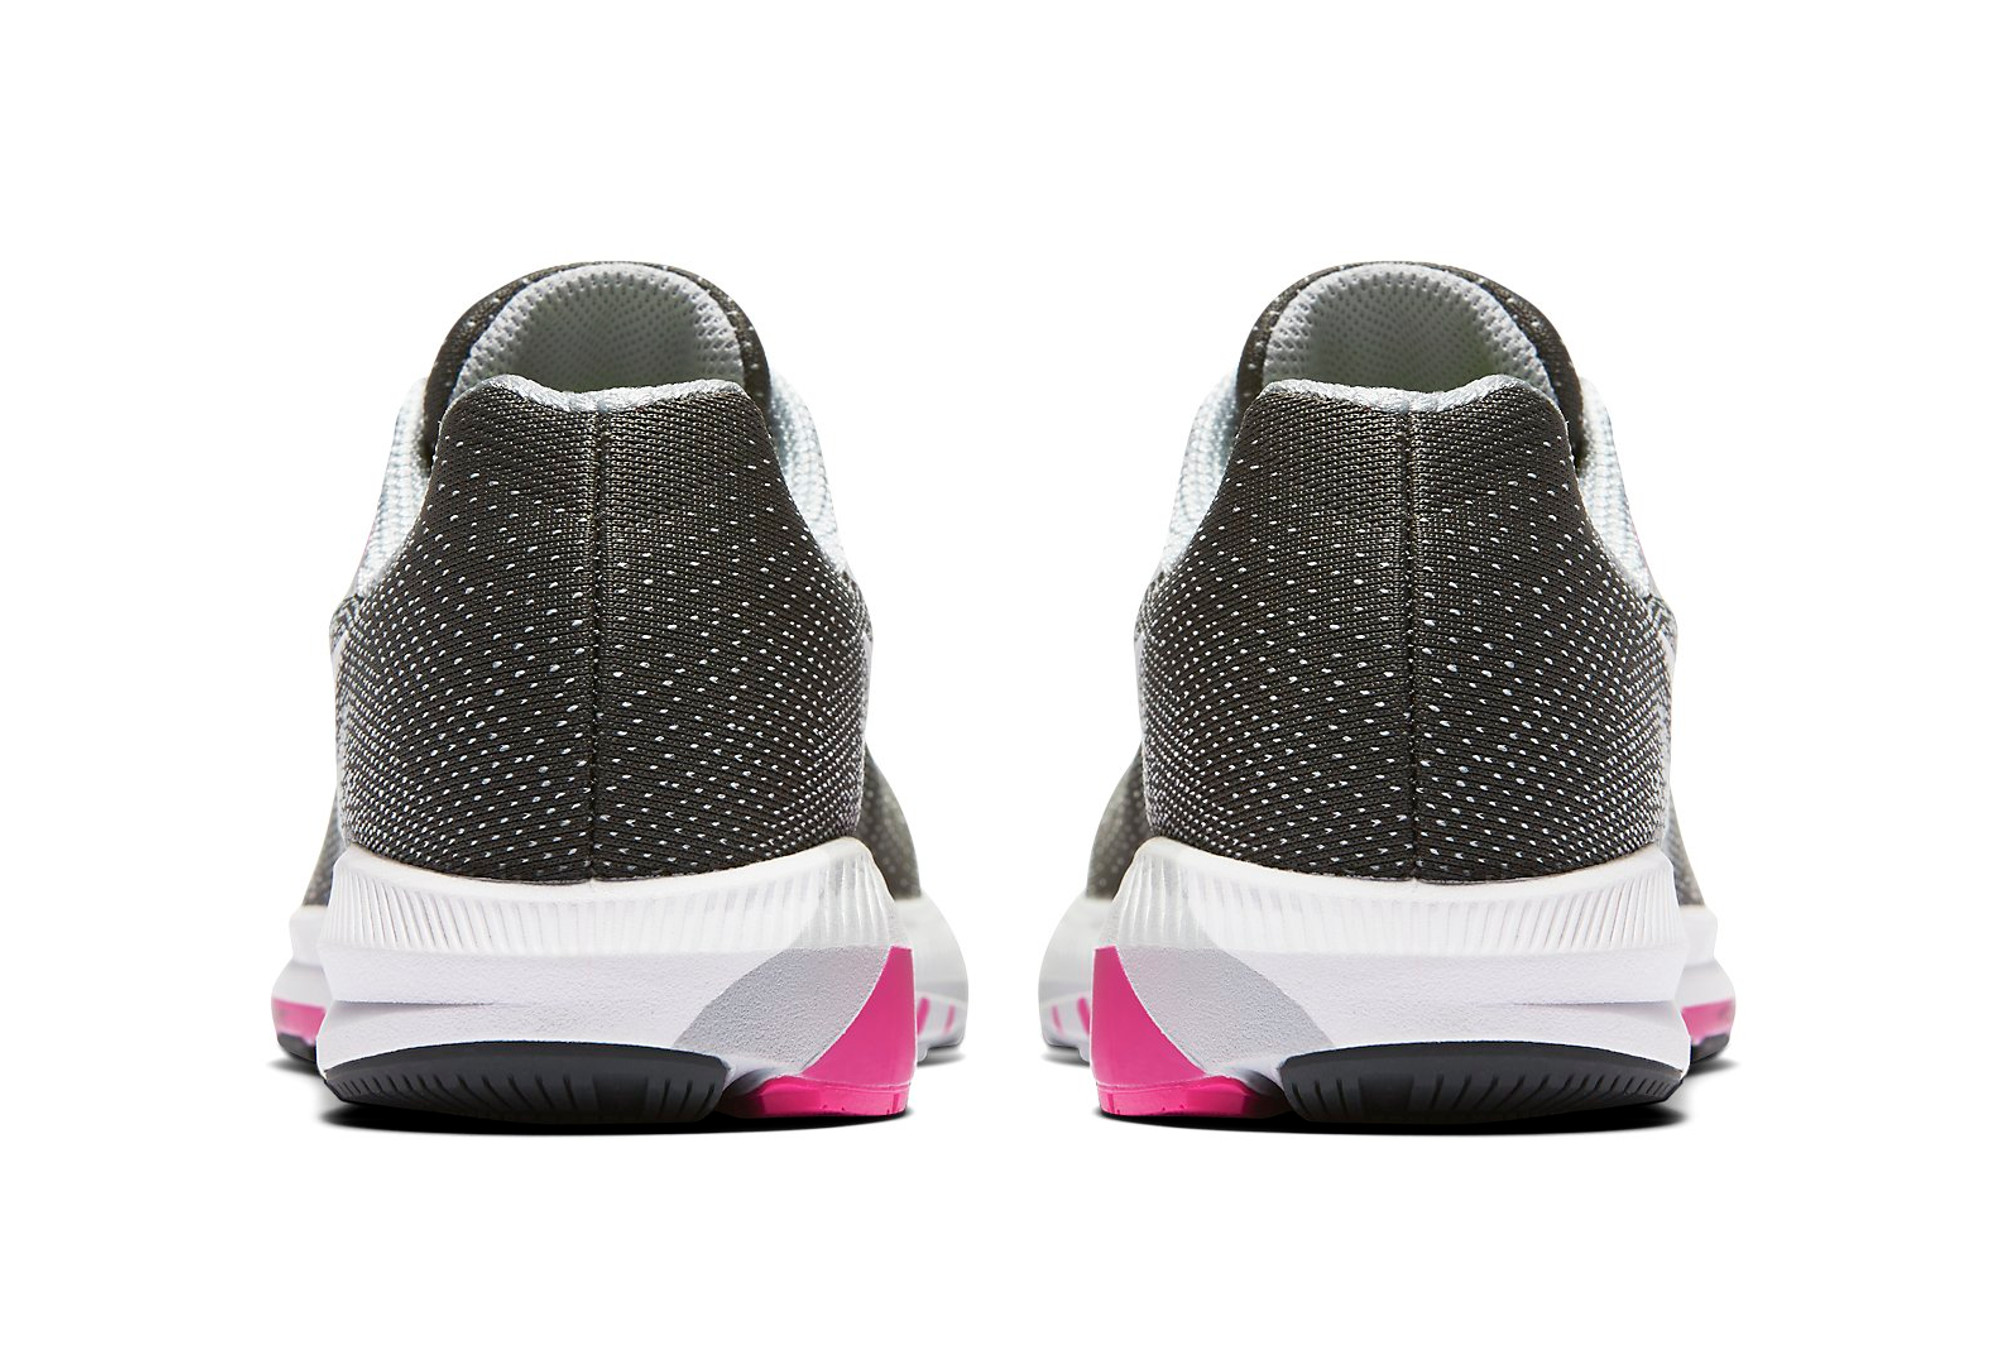 on sale 04280 0a5f1 NIKE AIR ZOOM STRUCTURE 20 Grey Pink Women